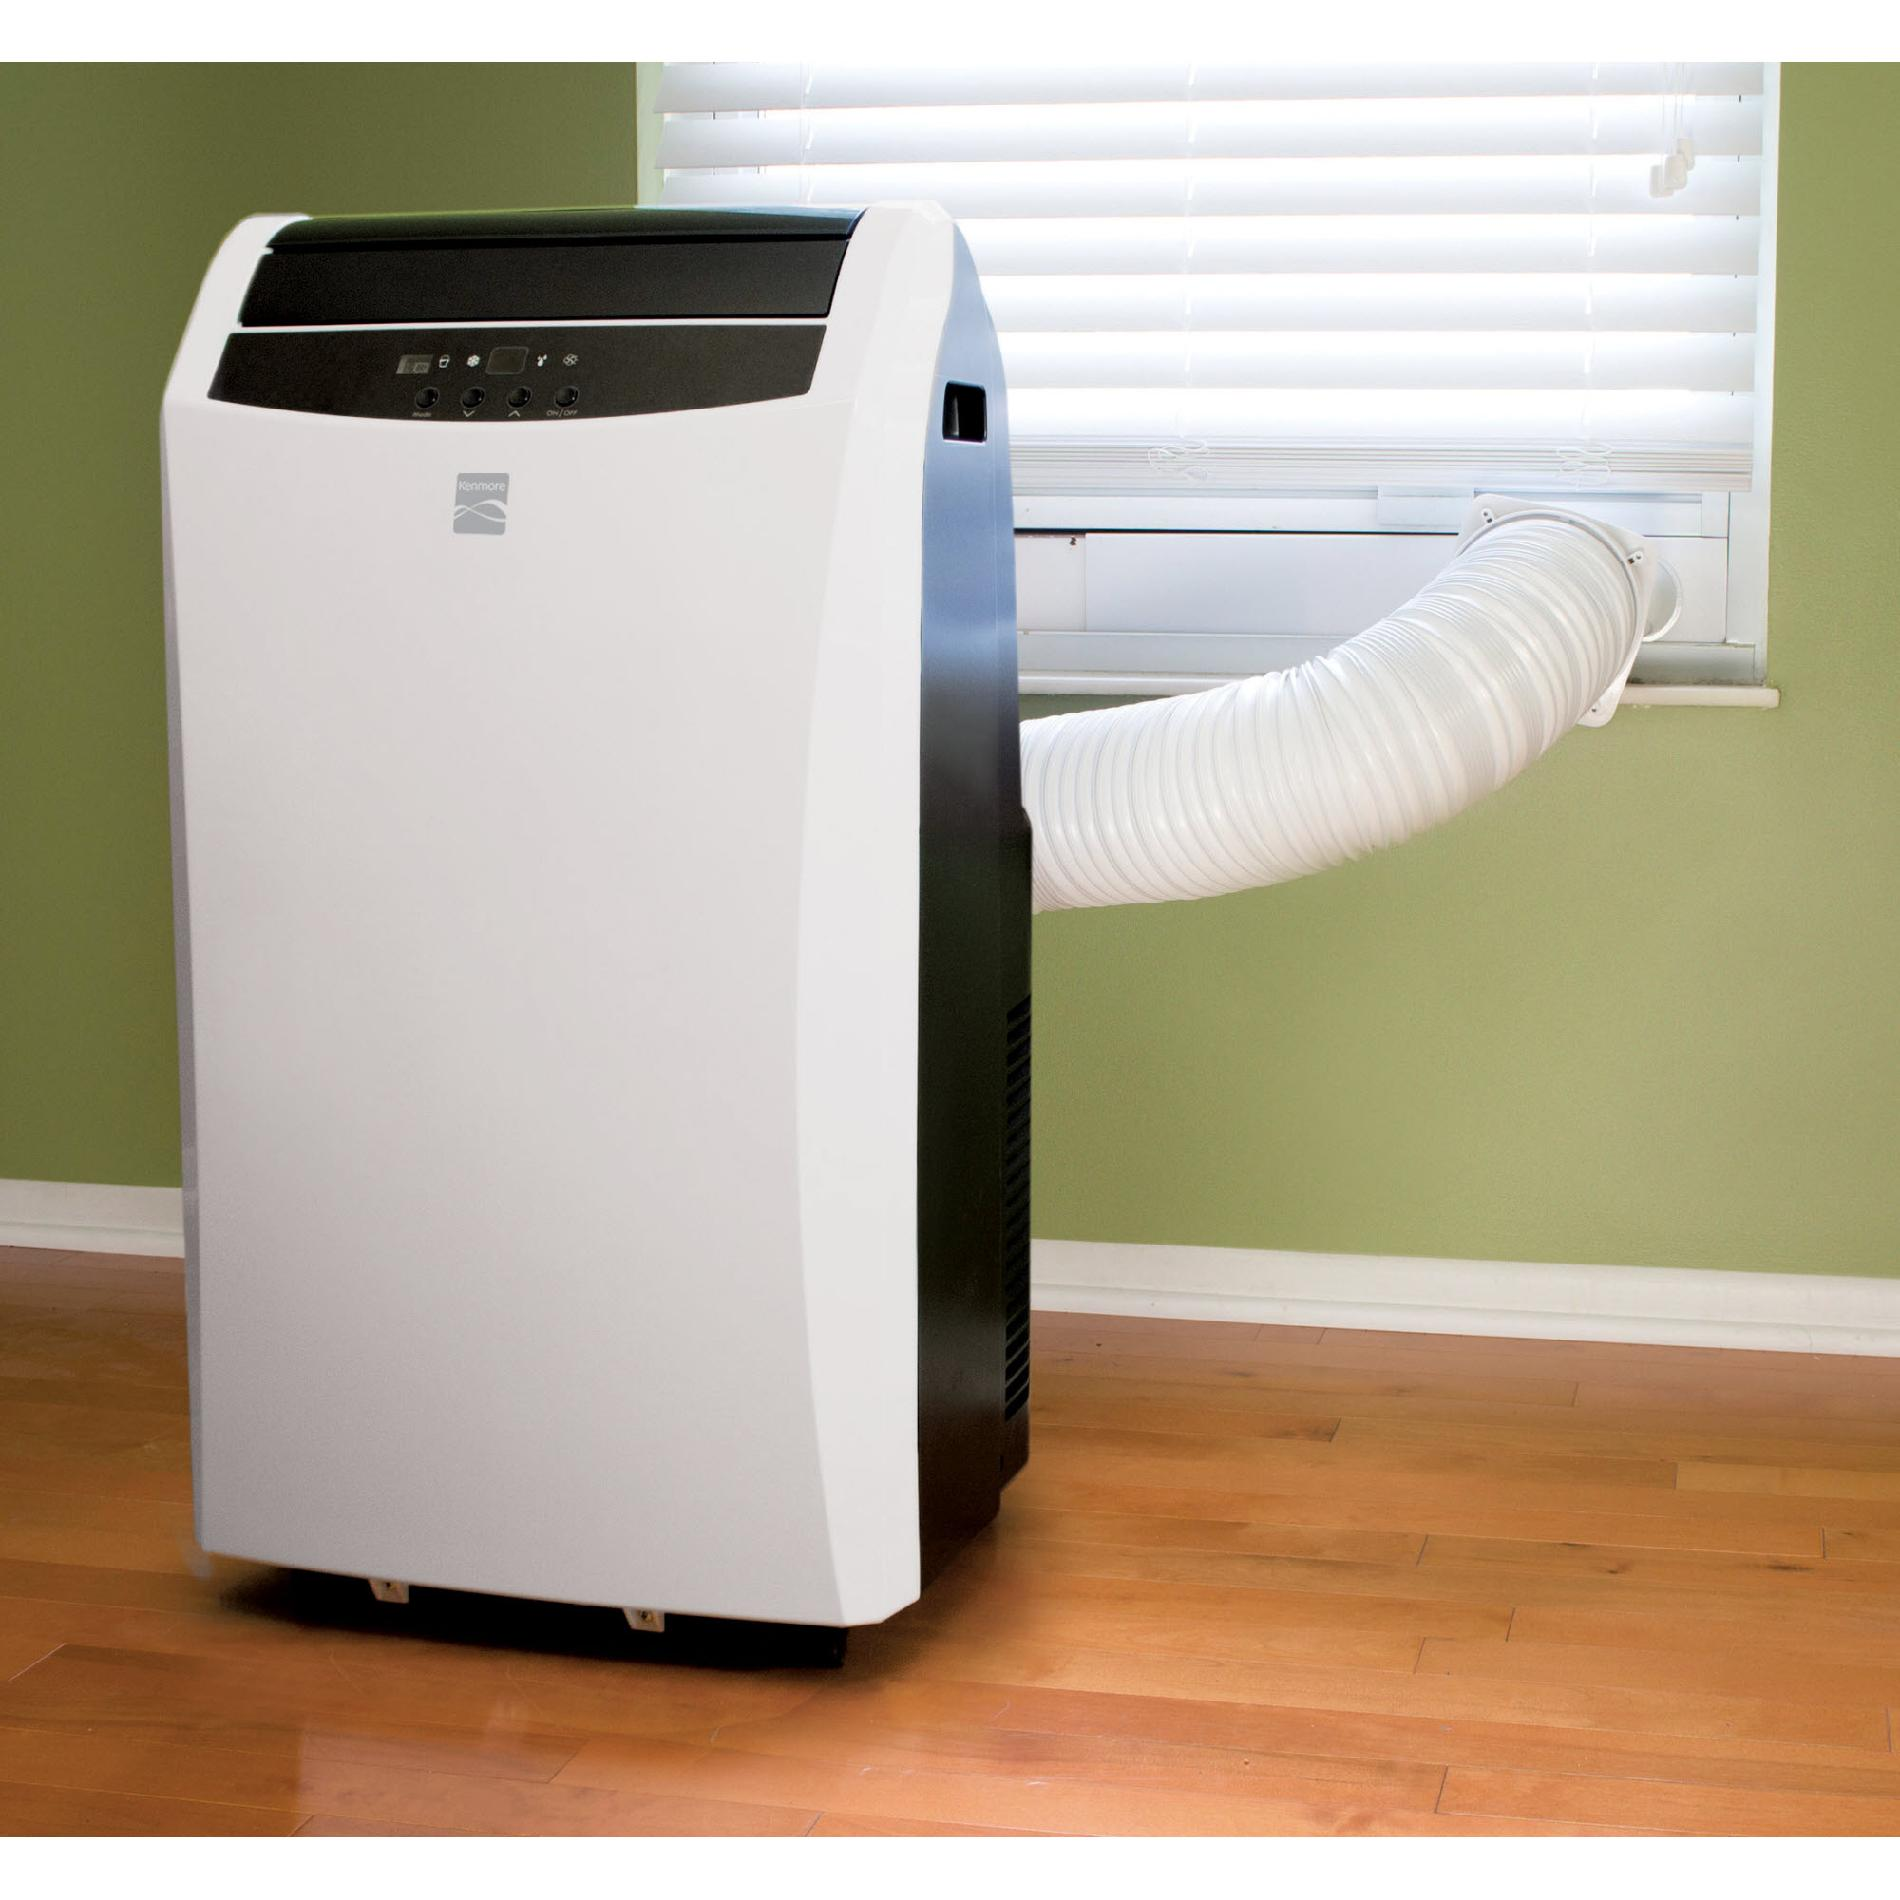 Furnace Air Conditioner